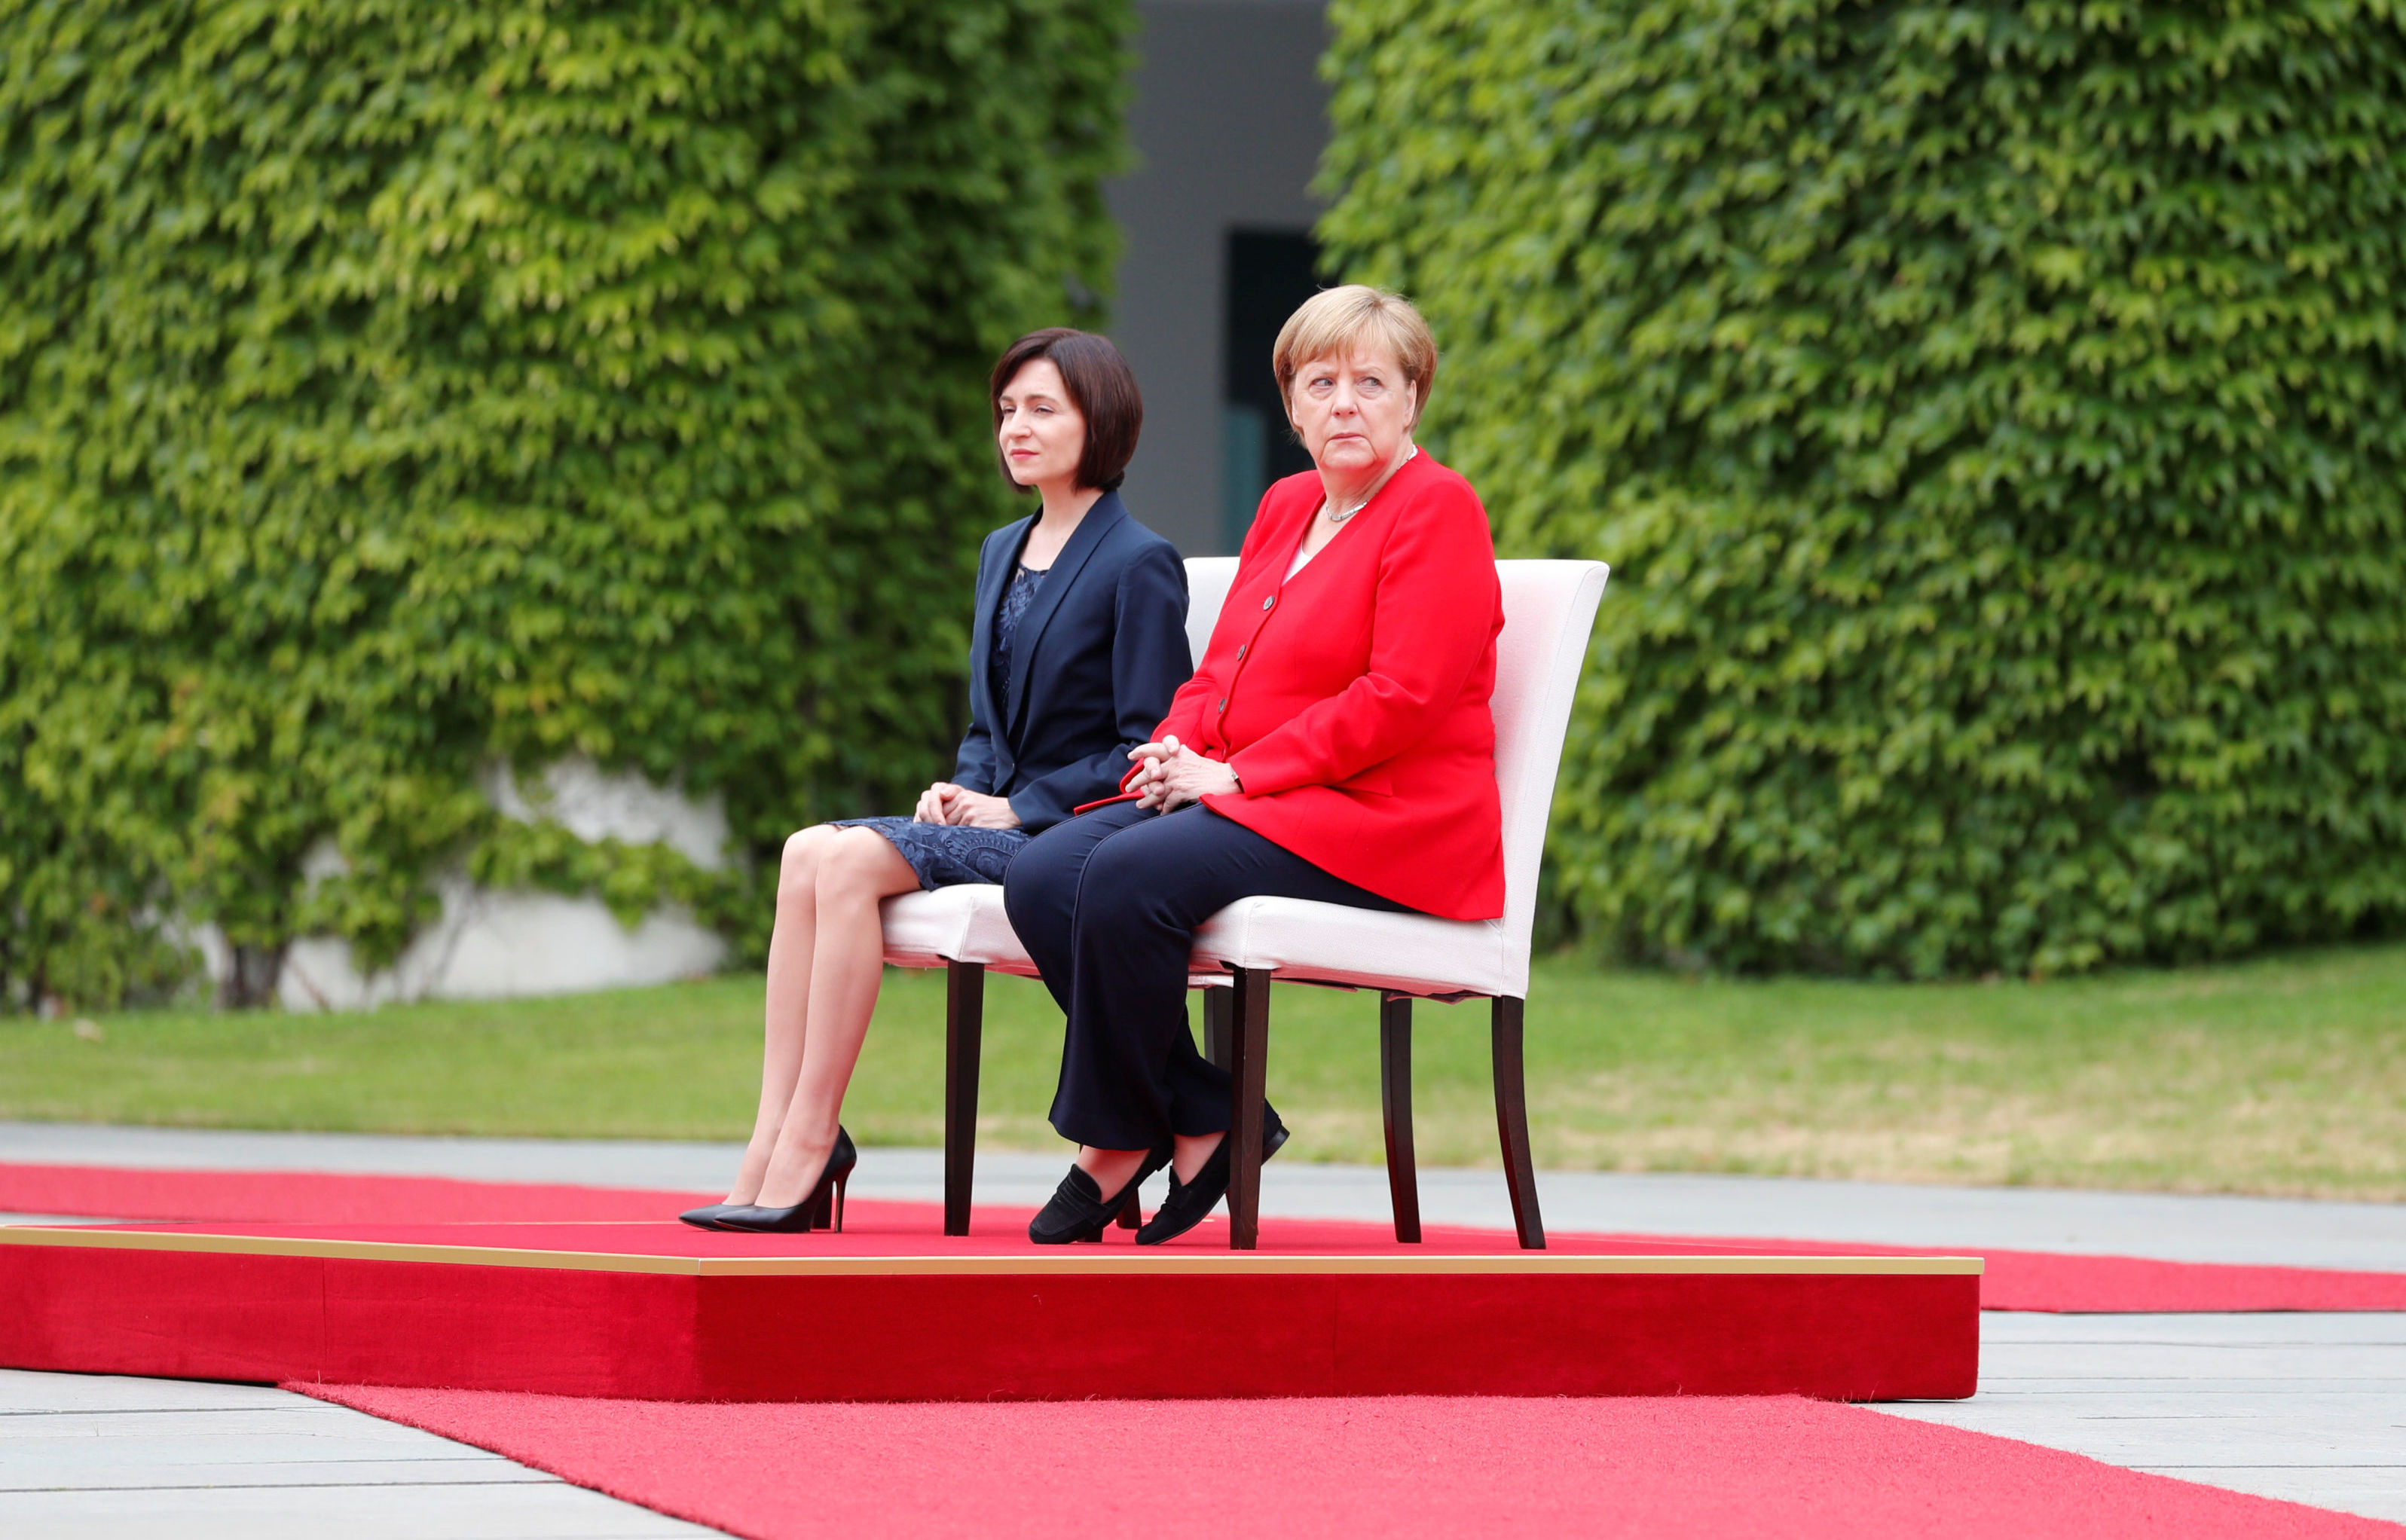 German Chancellor Angela Merkel and Moldova's Prime Minister Maia Sandu sit during a welcoming ceremony at the Chancellery in Berlin, Germany July 16, 2019